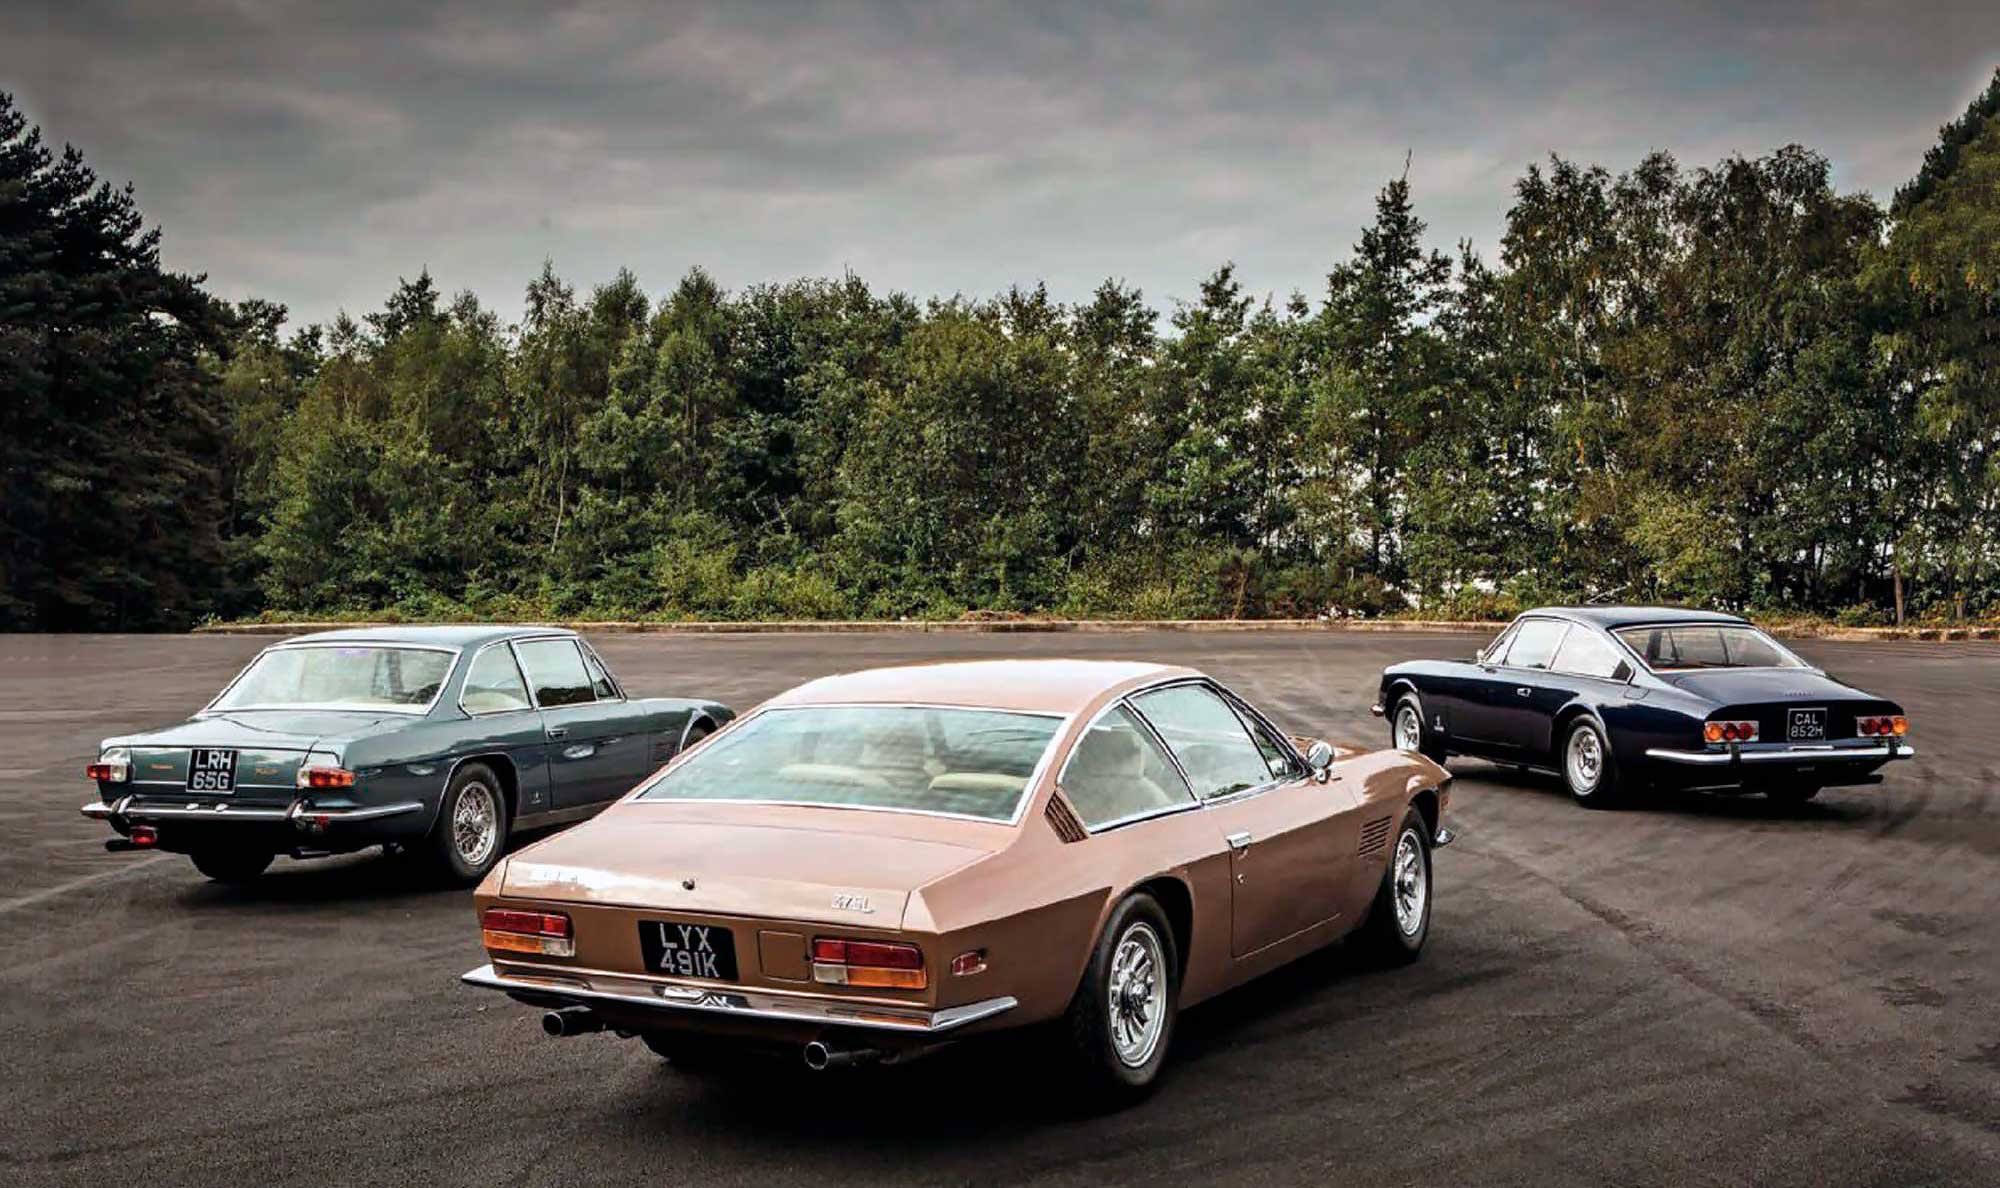 Ferrari 365GT 2+2 vs. Maserati Mexico and Monteverdi 375L road test